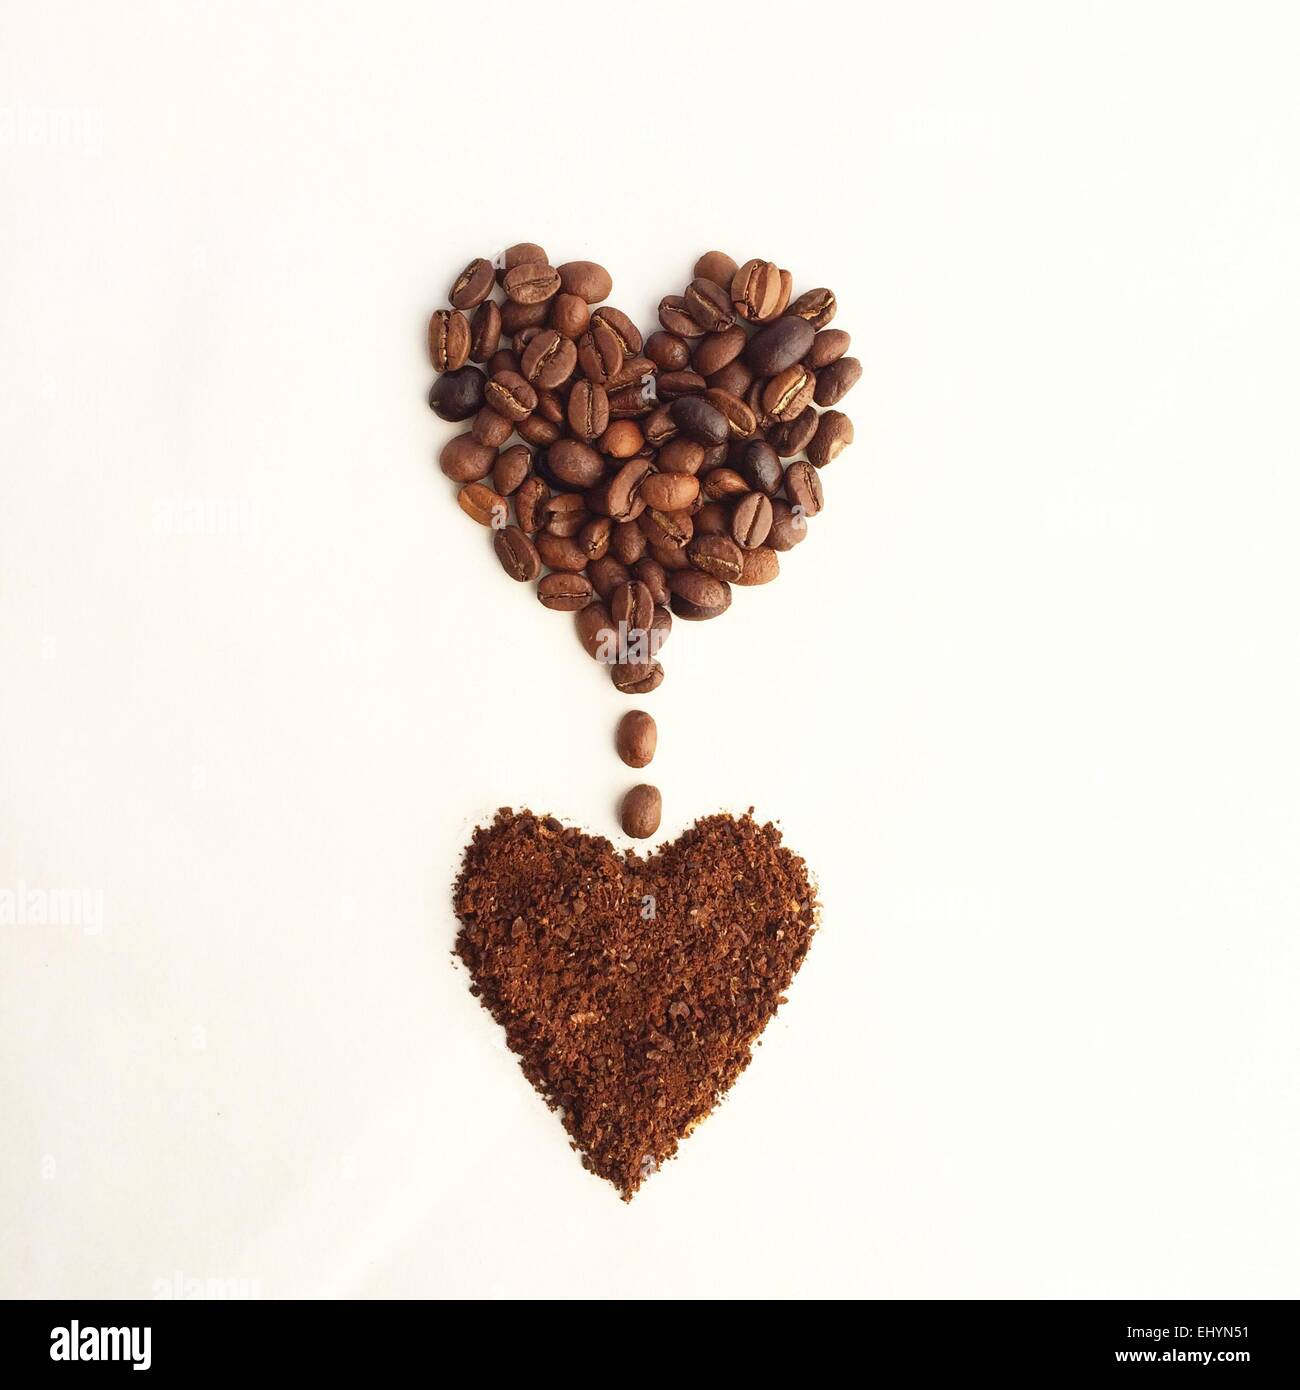 Coffee beans in a heart shape, dripping into another heart shape of ground coffee - Stock Image